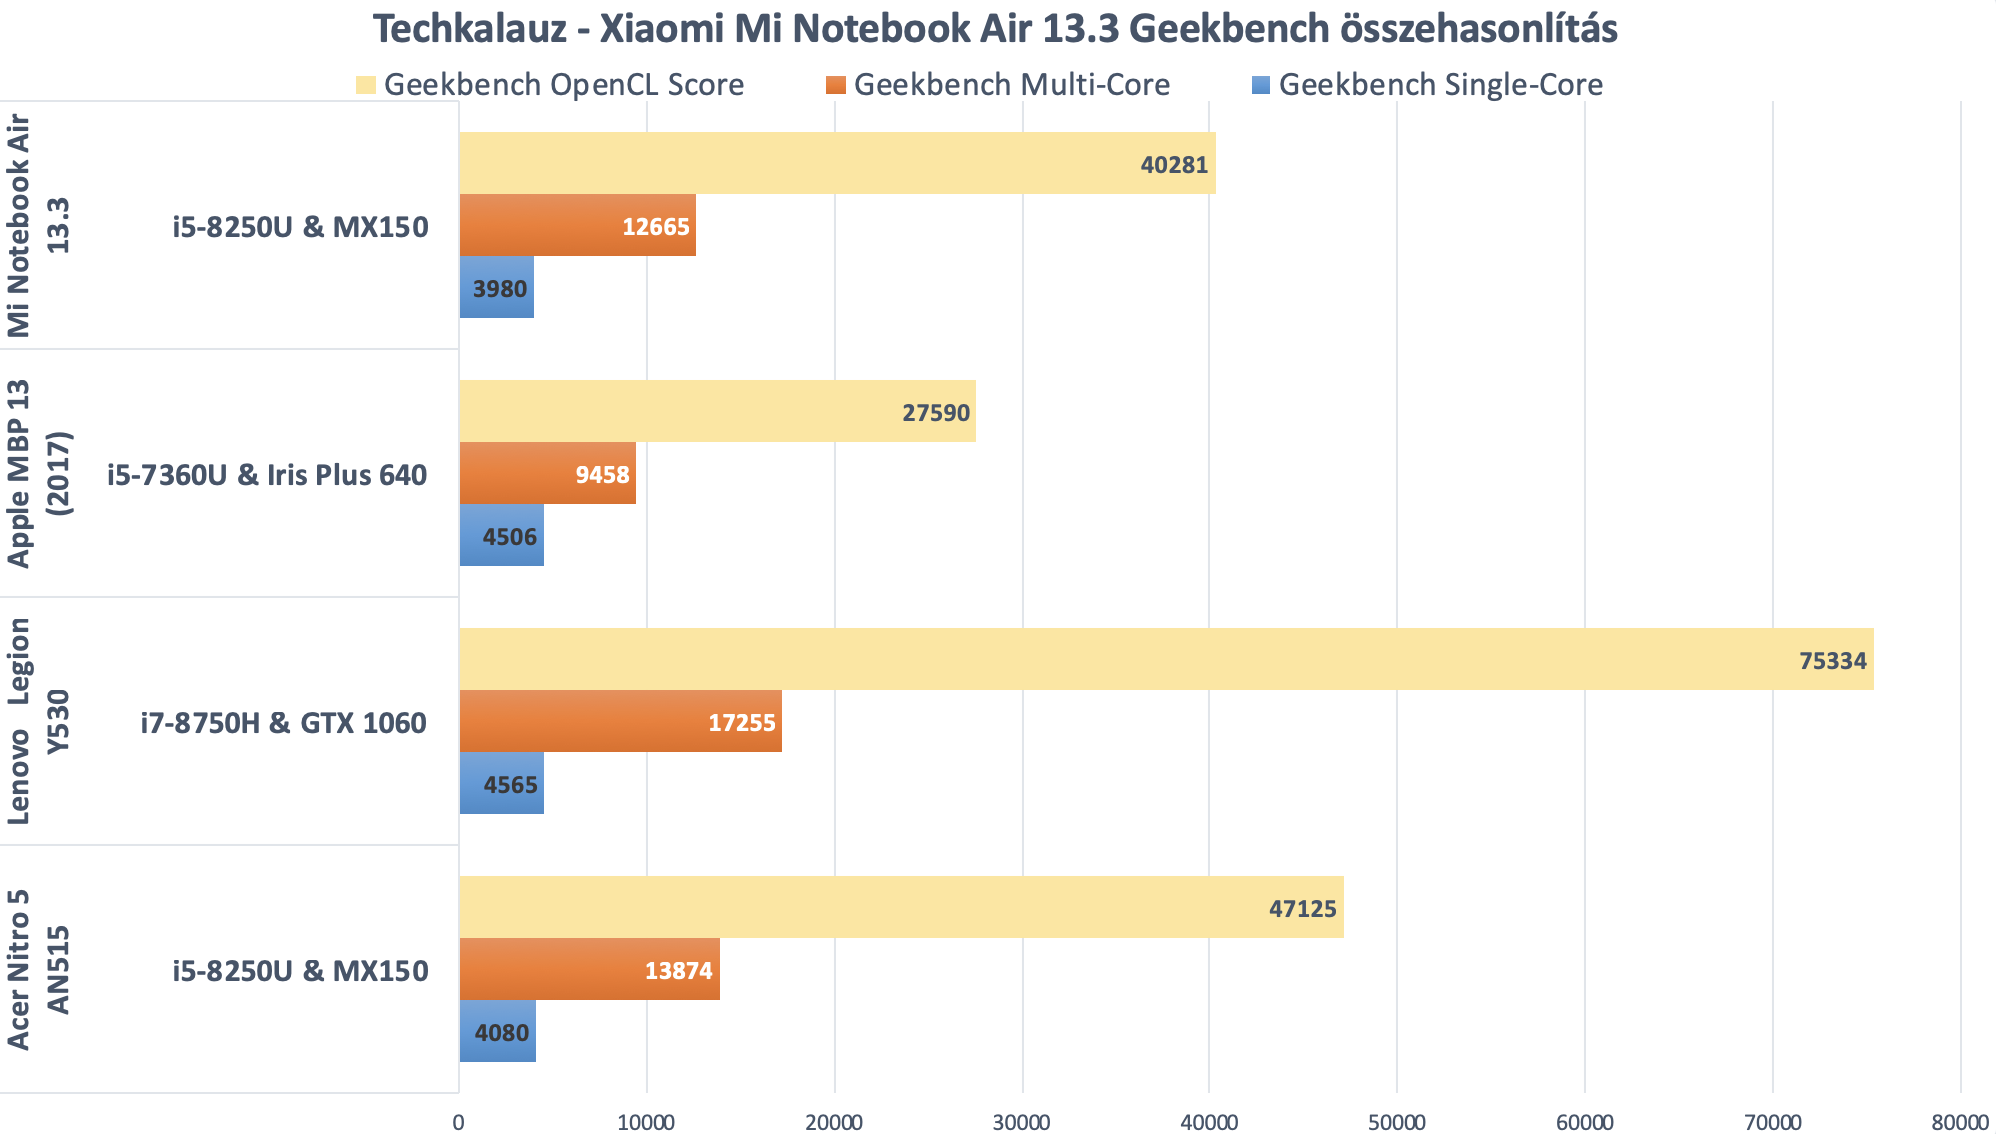 xiaomi mi notebook air 13.3 geekbench